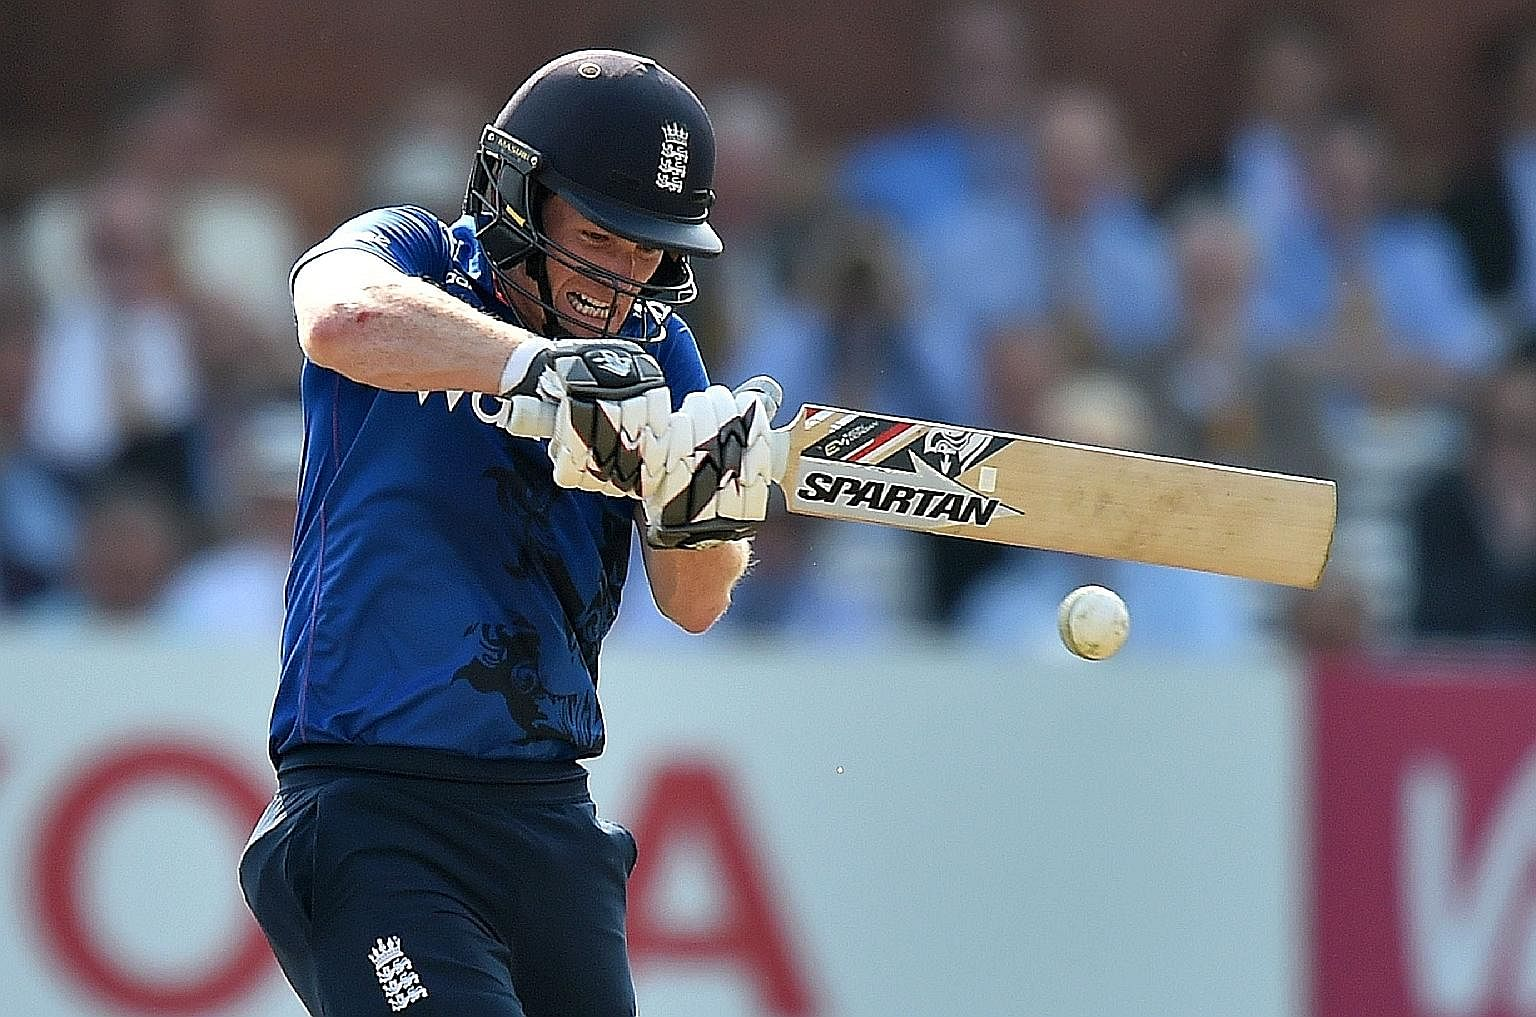 Irish-born Eoin Morgan, the captain of England's one-day and Twenty20 cricket teams, has been stridently criticised in some quarters for pulling out of the forthcoming tour of Bangladesh because of security concerns.